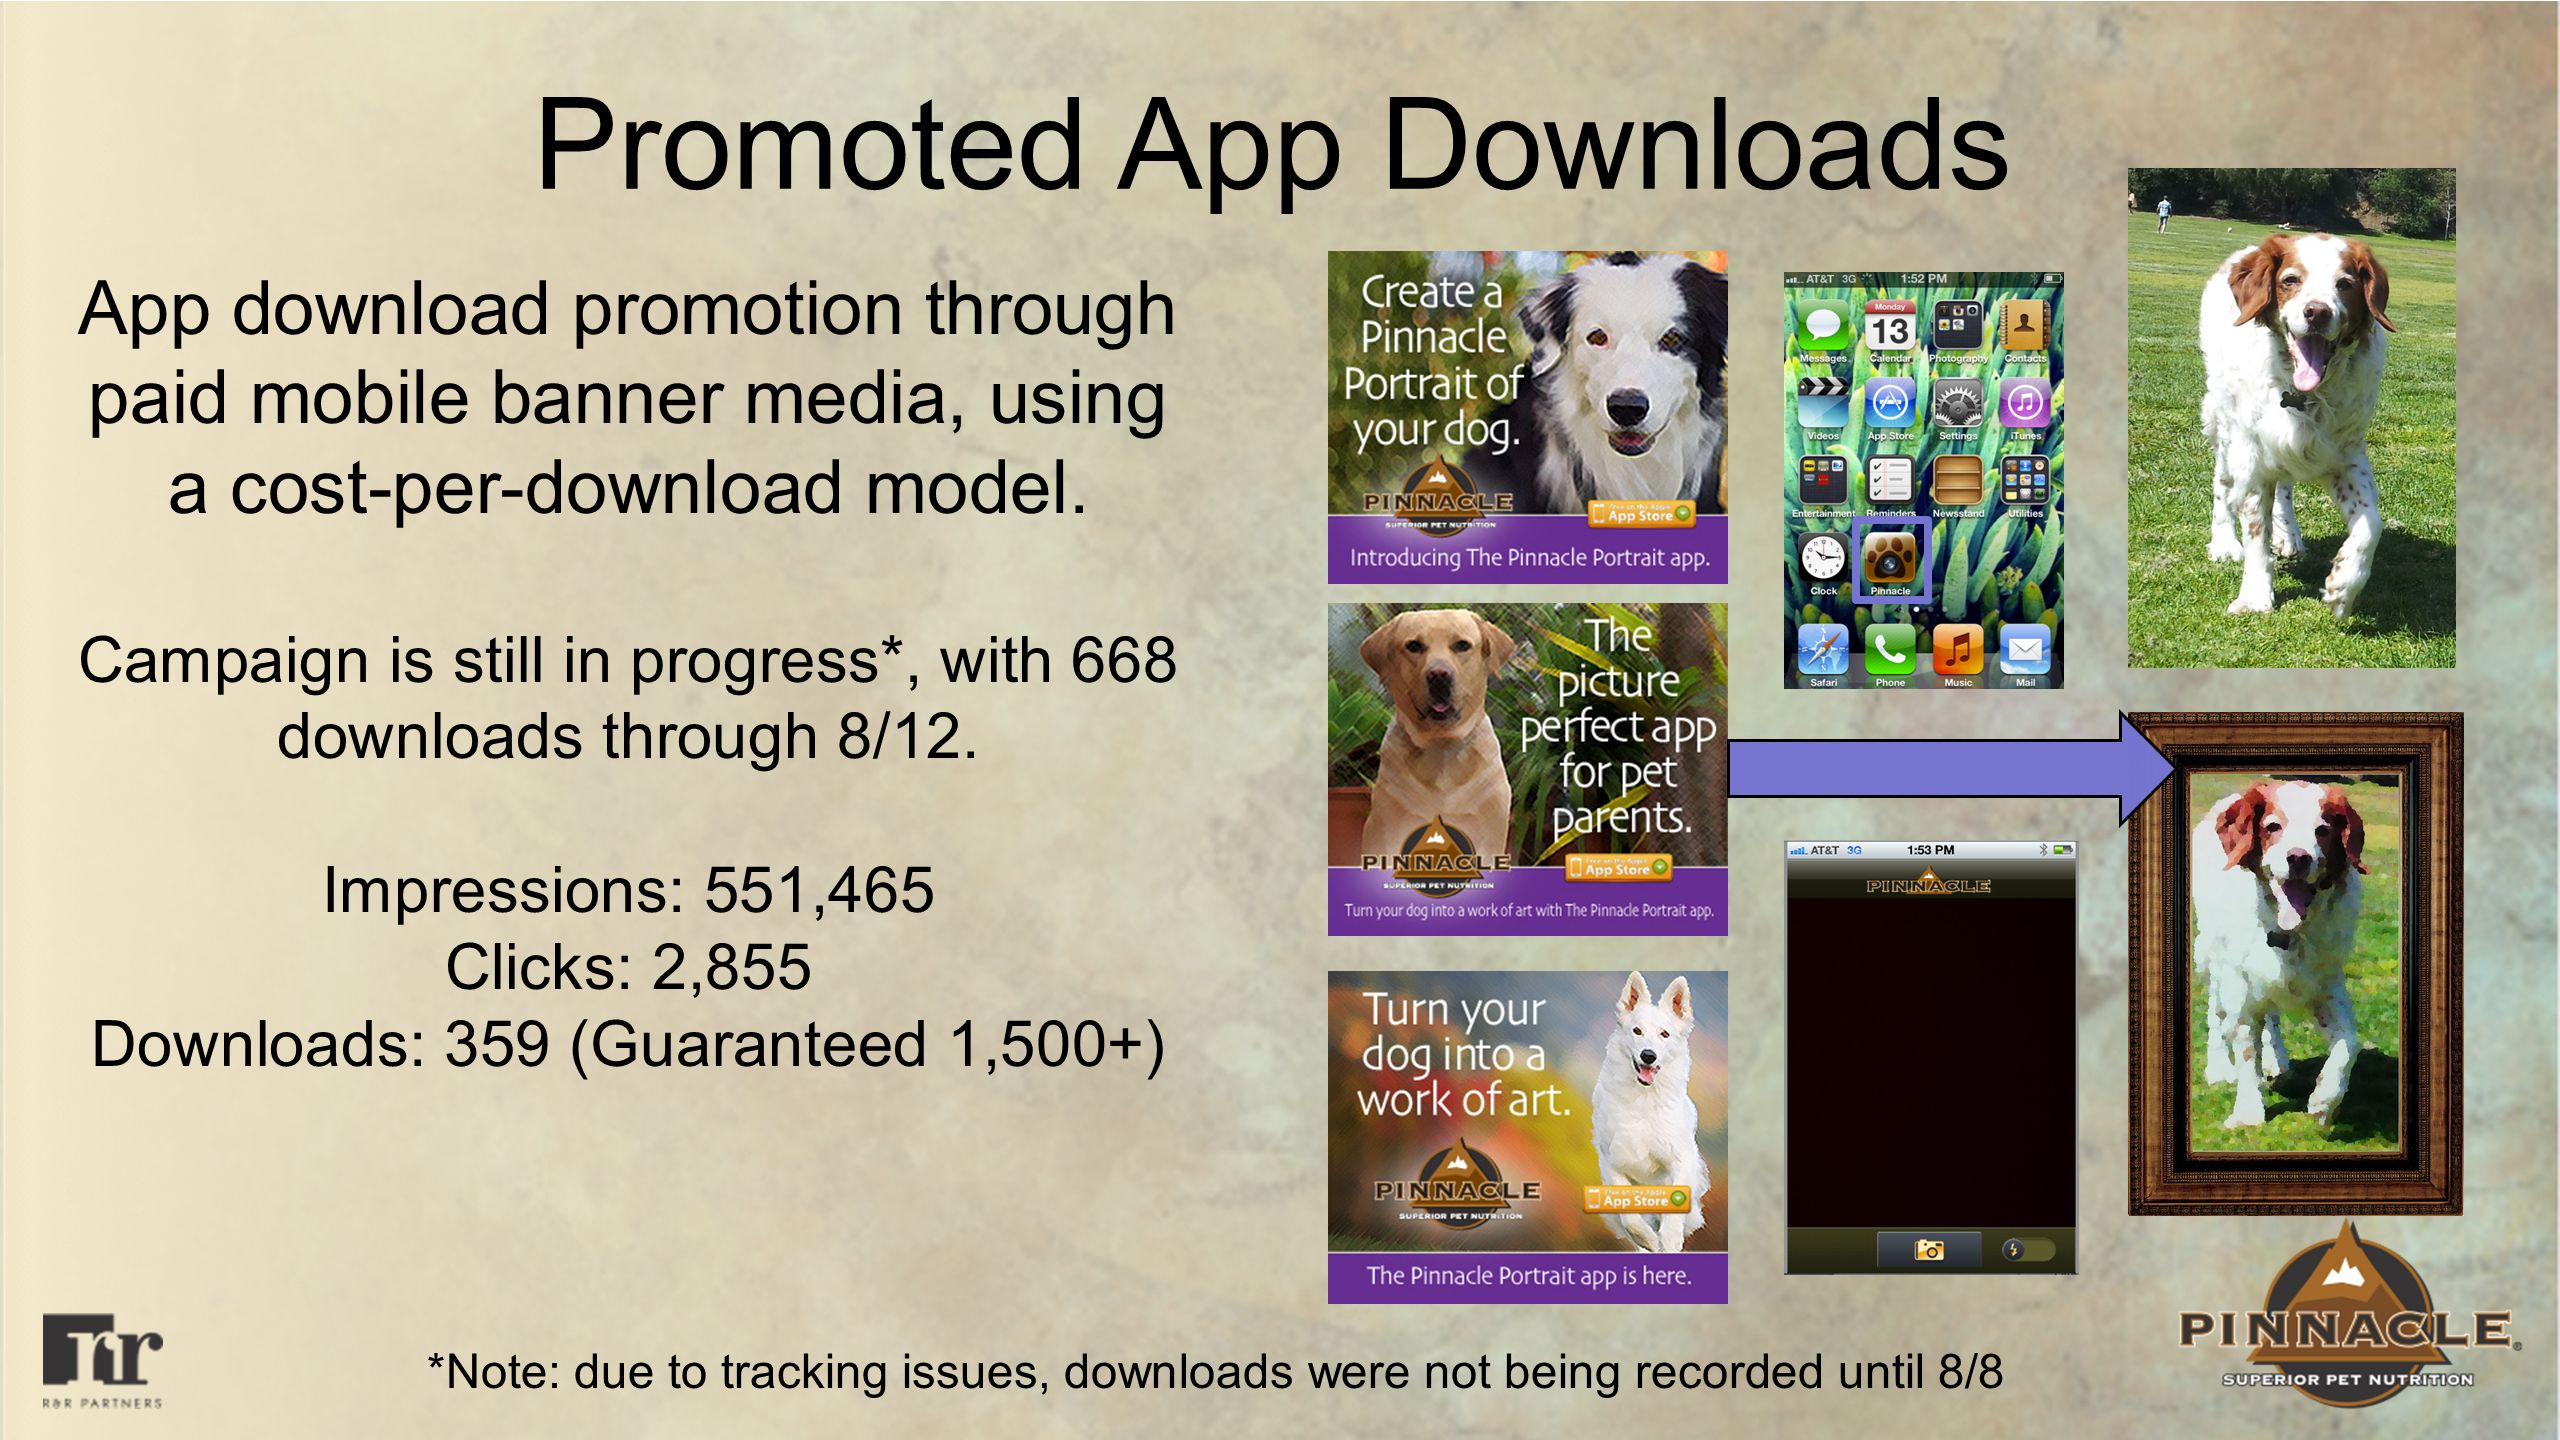 Promoted App Downloads App download promotion through paid mobile banner media, using a cost-per-download model.